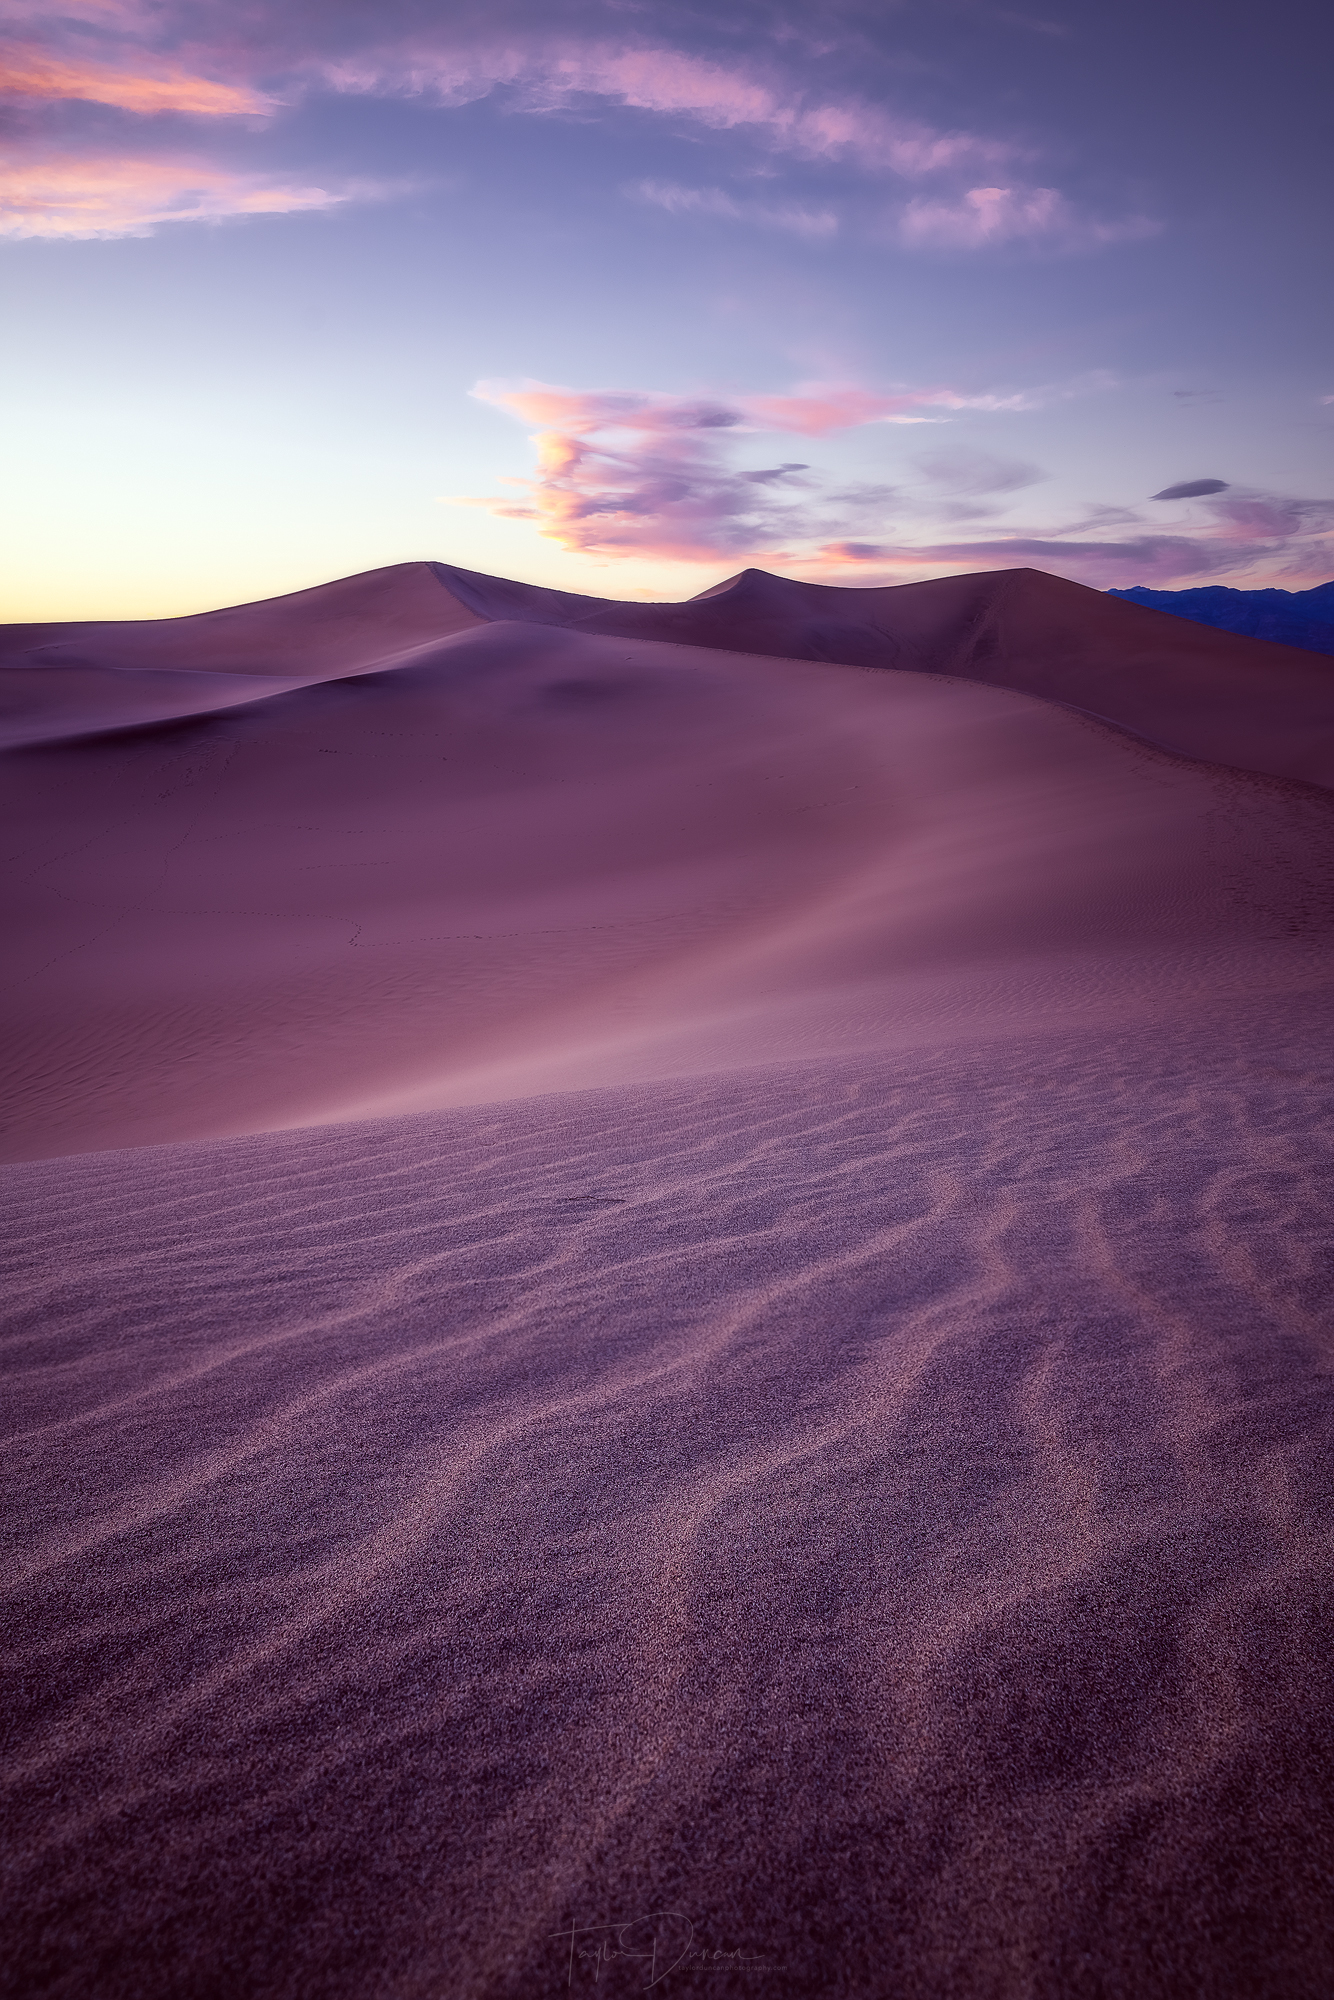 The dunes are incredible after the sun goes down!